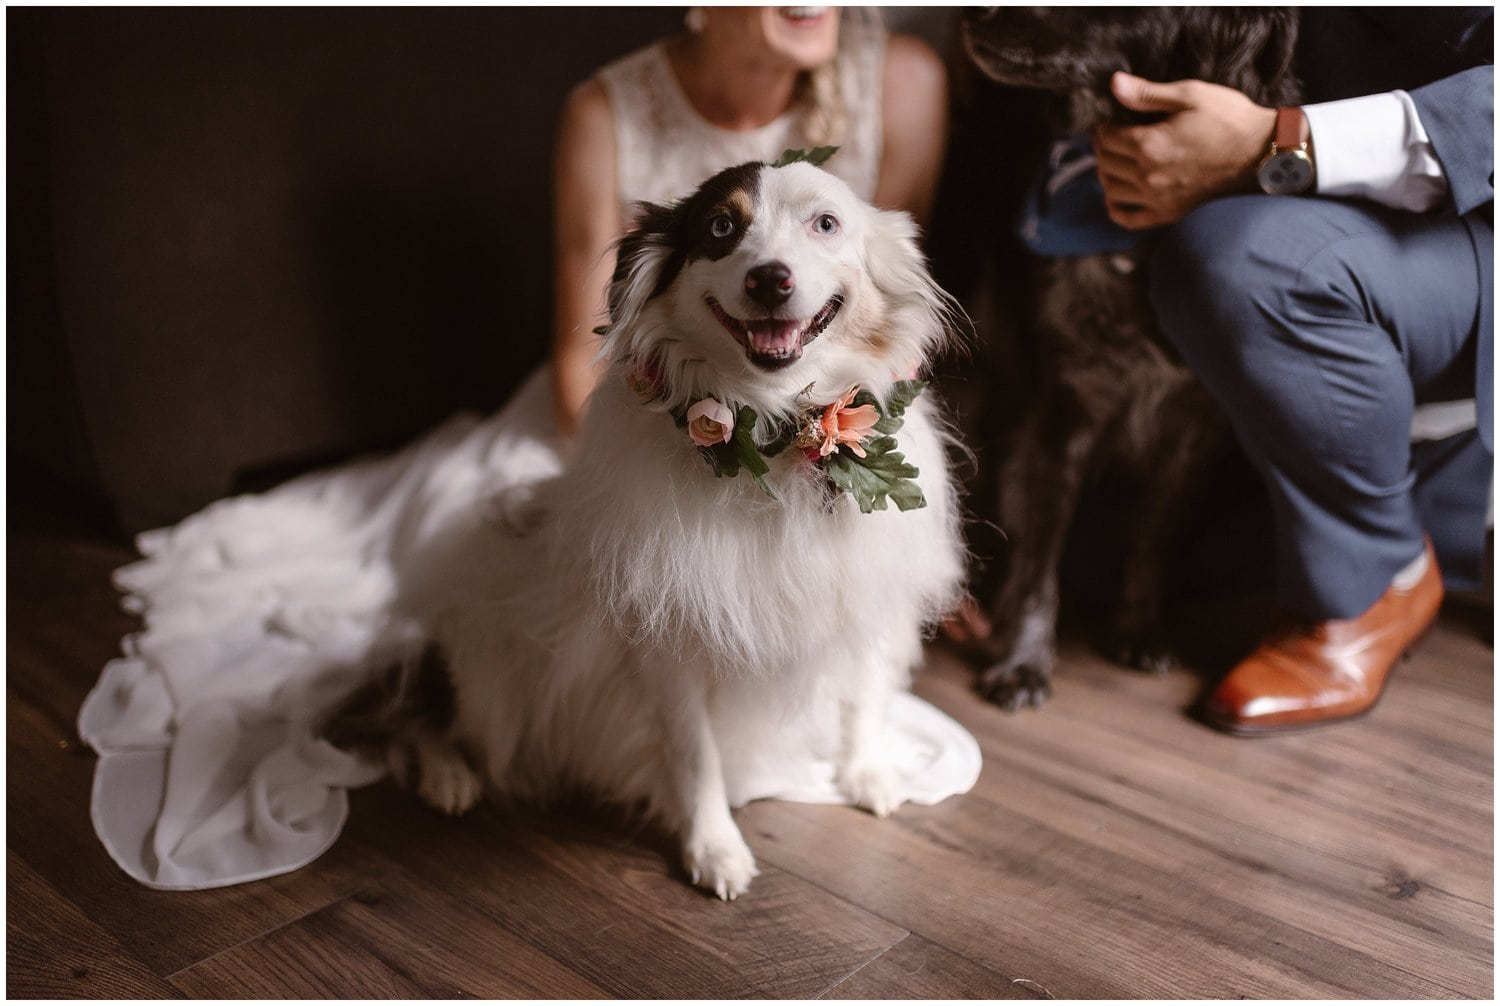 A white dog in a flower garland looks at the camera.